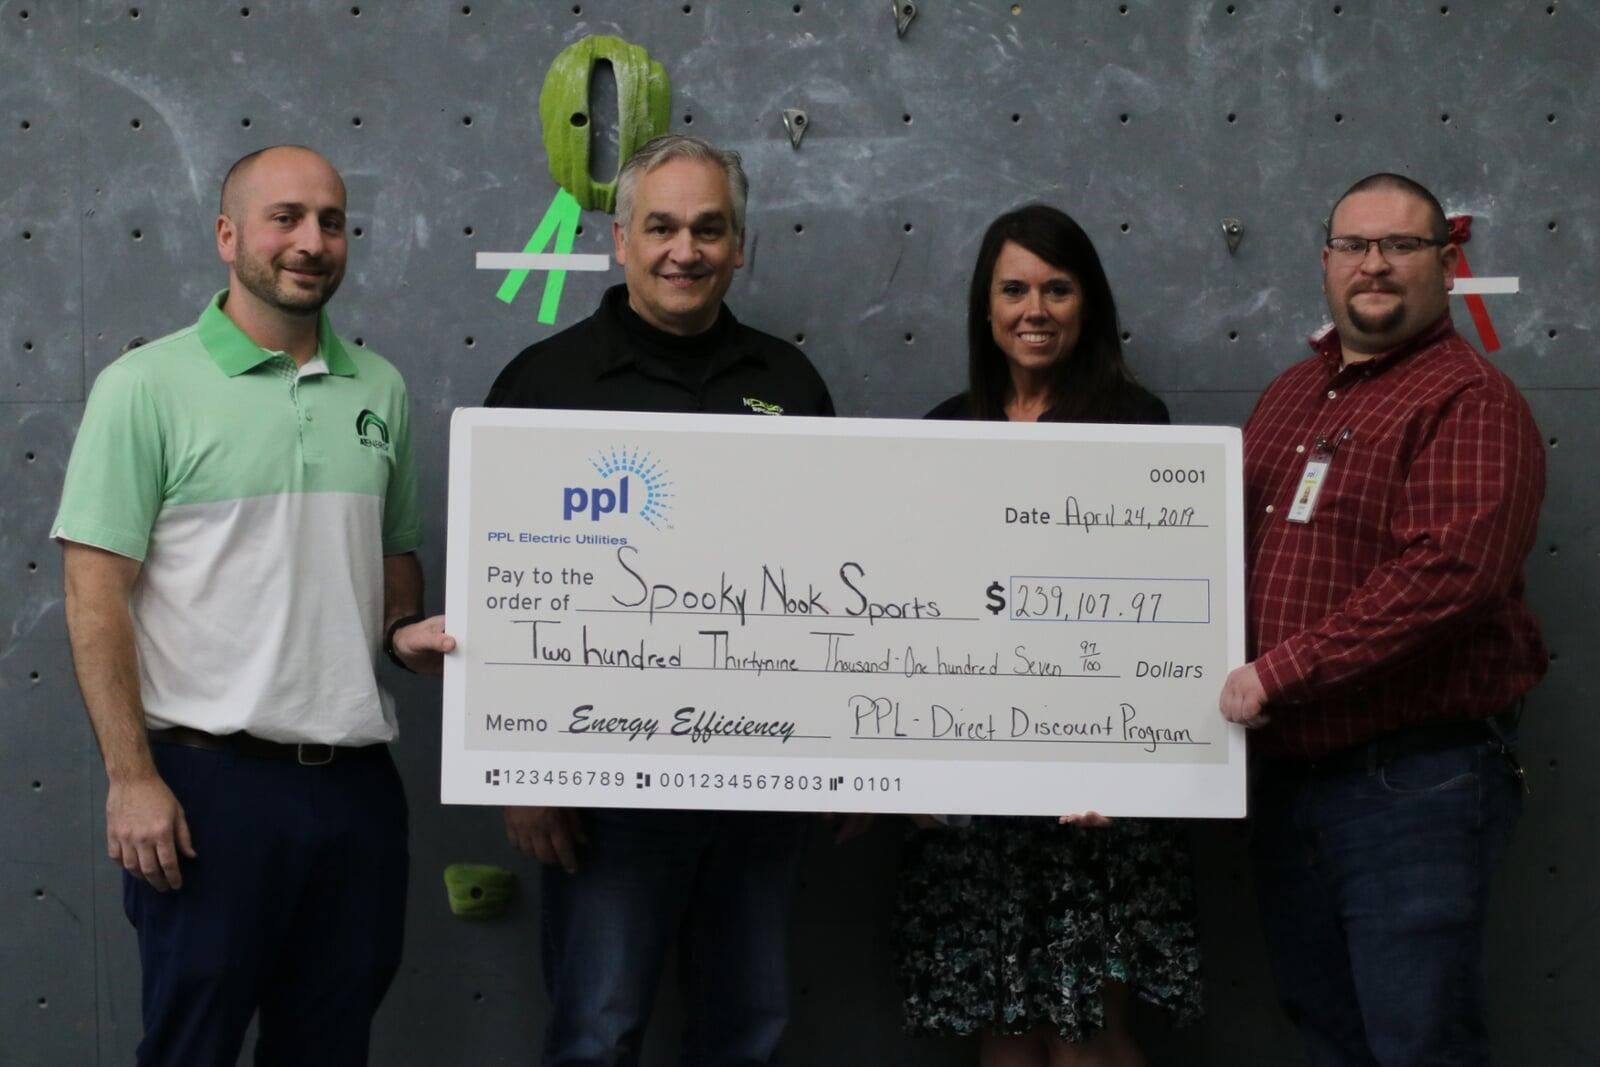 Spooky Nook Sports LED rebate check presentation